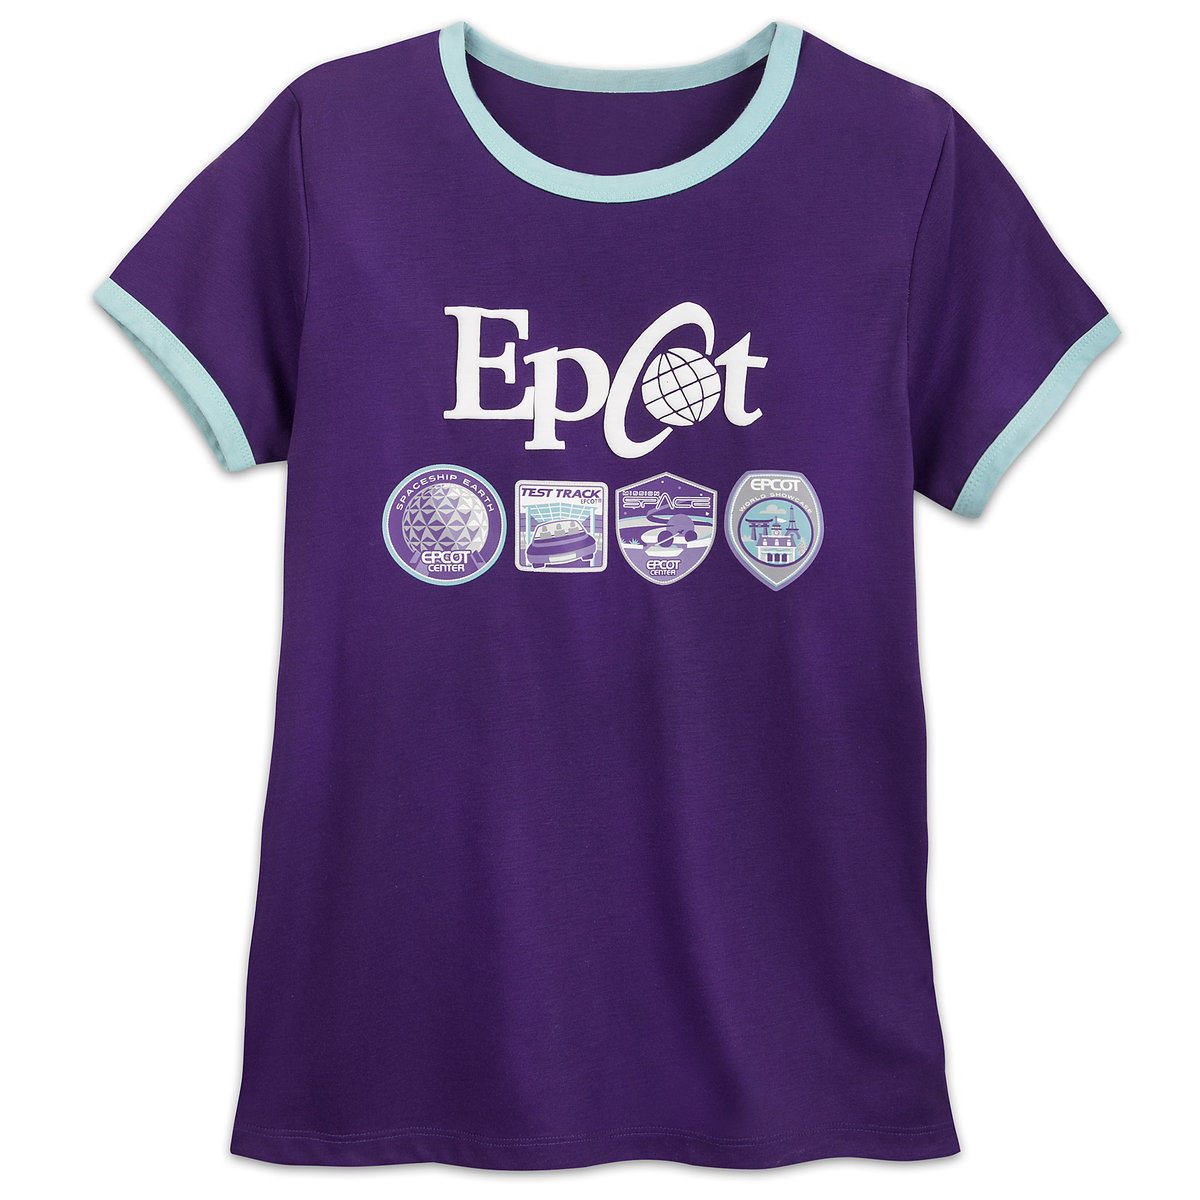 6665348eff9002 Product Image of Epcot Ringer T-Shirt for Women # 1